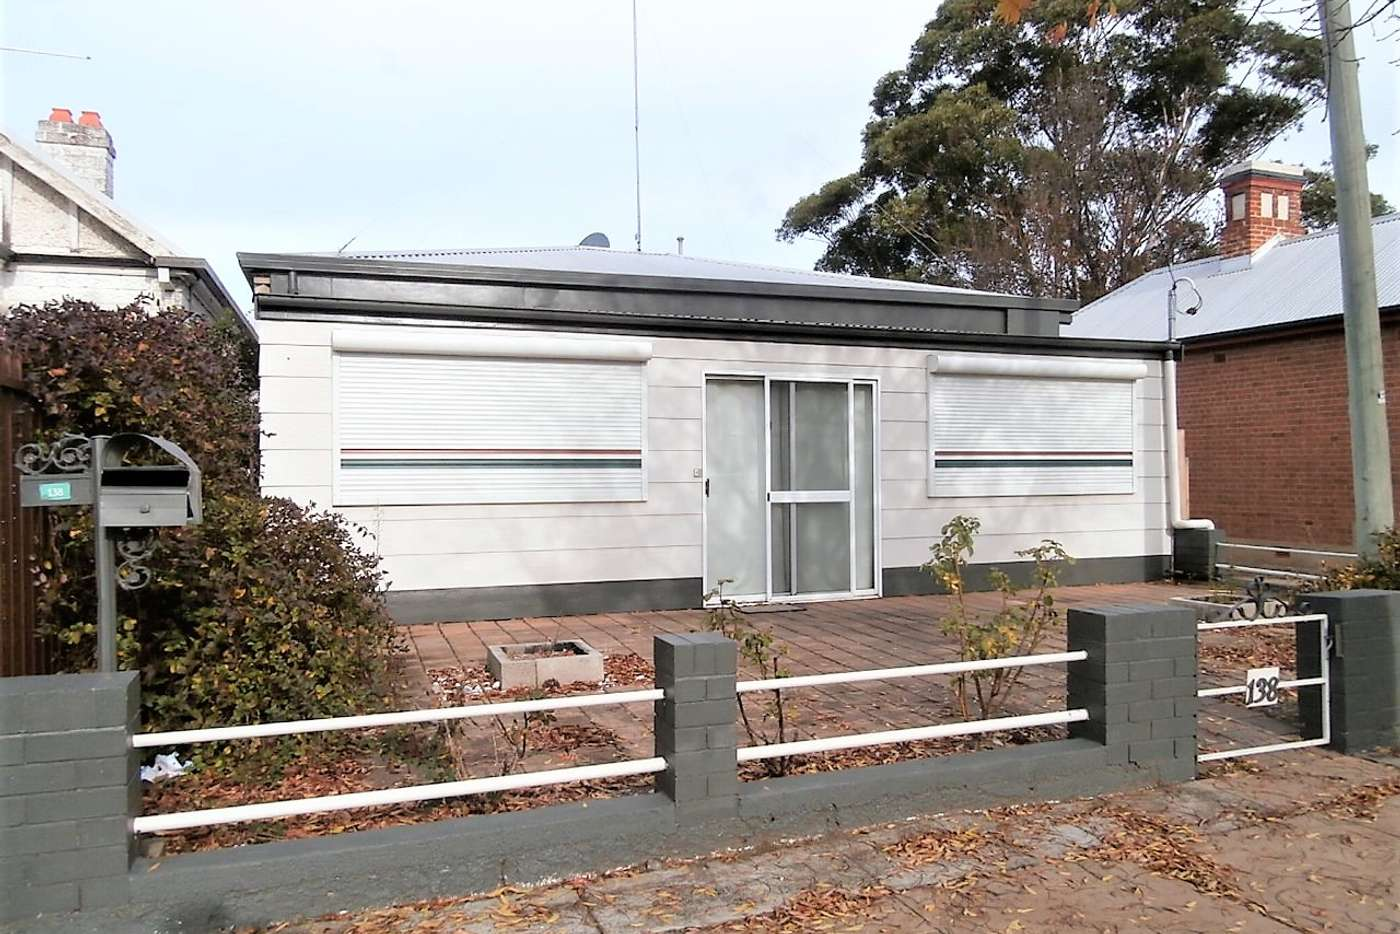 Main view of Homely house listing, 138 Stewart Street, Bathurst NSW 2795